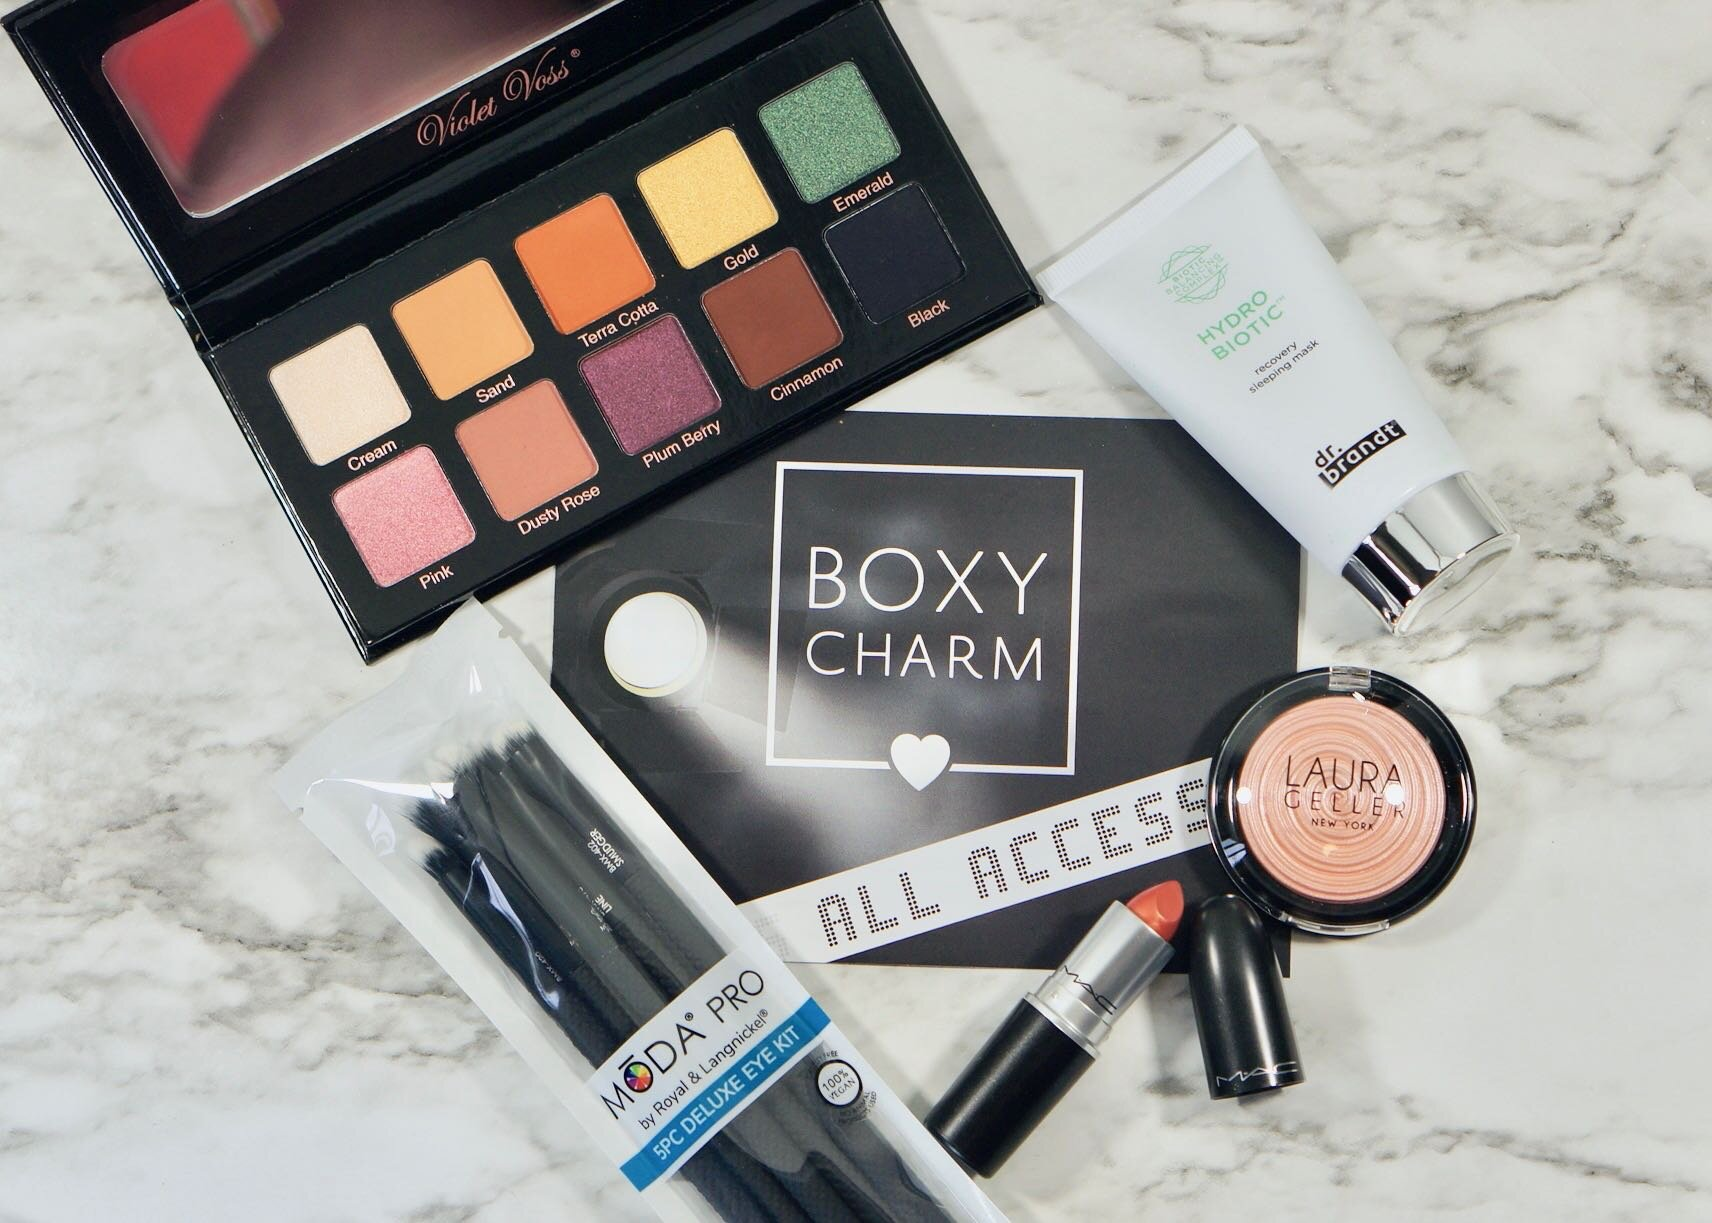 Boxy Charm September 2019-All AccessDSC02285.jpg